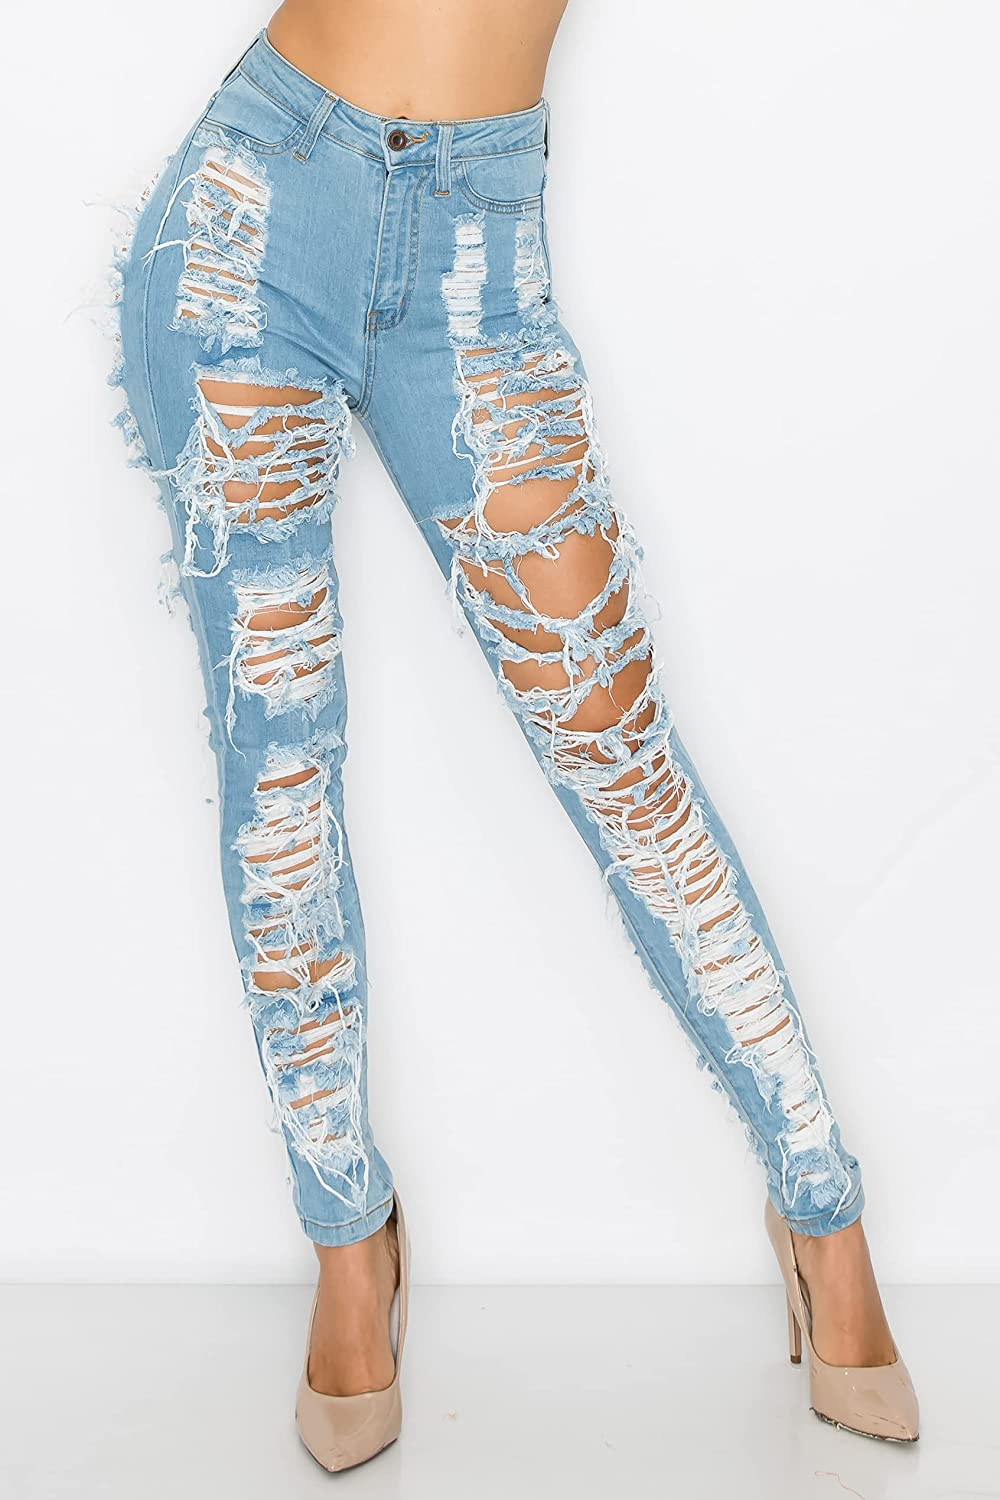 Aphrodite High Waisted Jeans for Women - High Rise Skinny Womens Hand Sanding Distressed Ripped Jeans with Cut Outs 40090/1 Light Blue 13